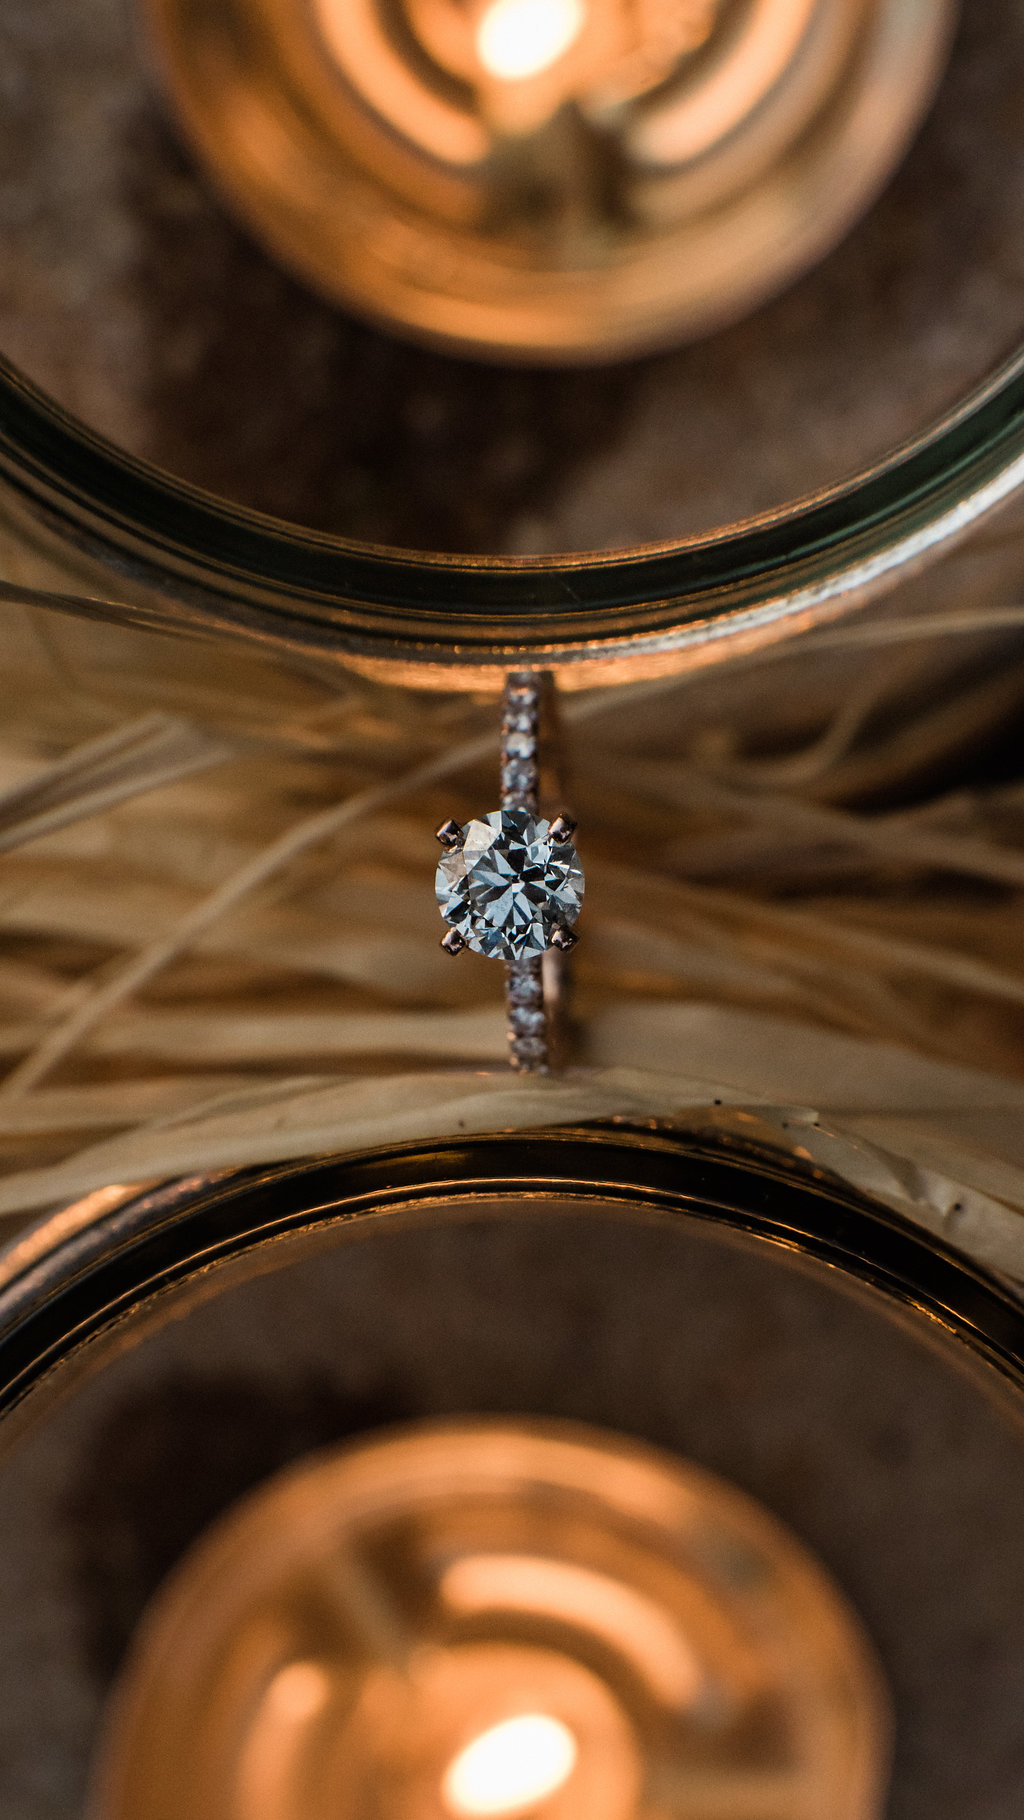 Ring Details Shot Bride and Groom at St. Patrick Episcopal Church Elopement in Mooresville, NC from Charlotte Wedding Photographer